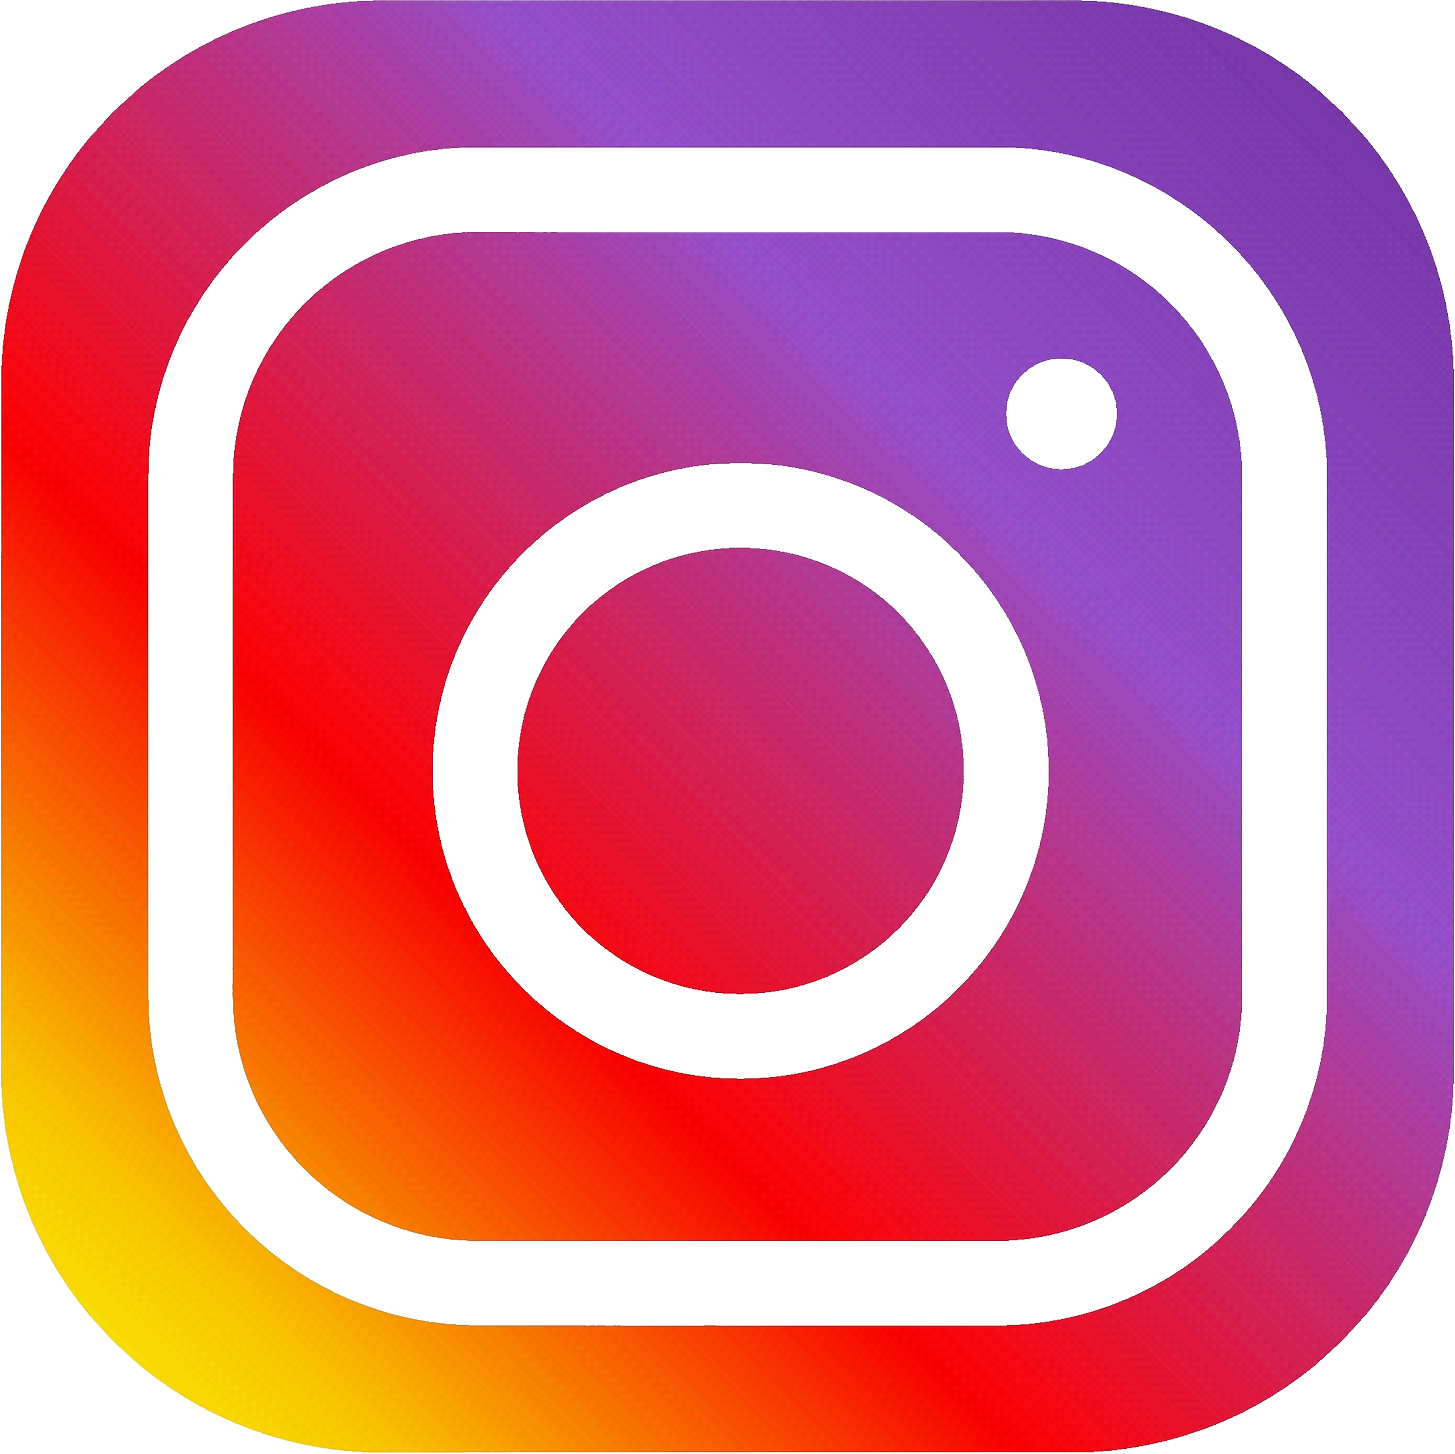 insta icon 2.png